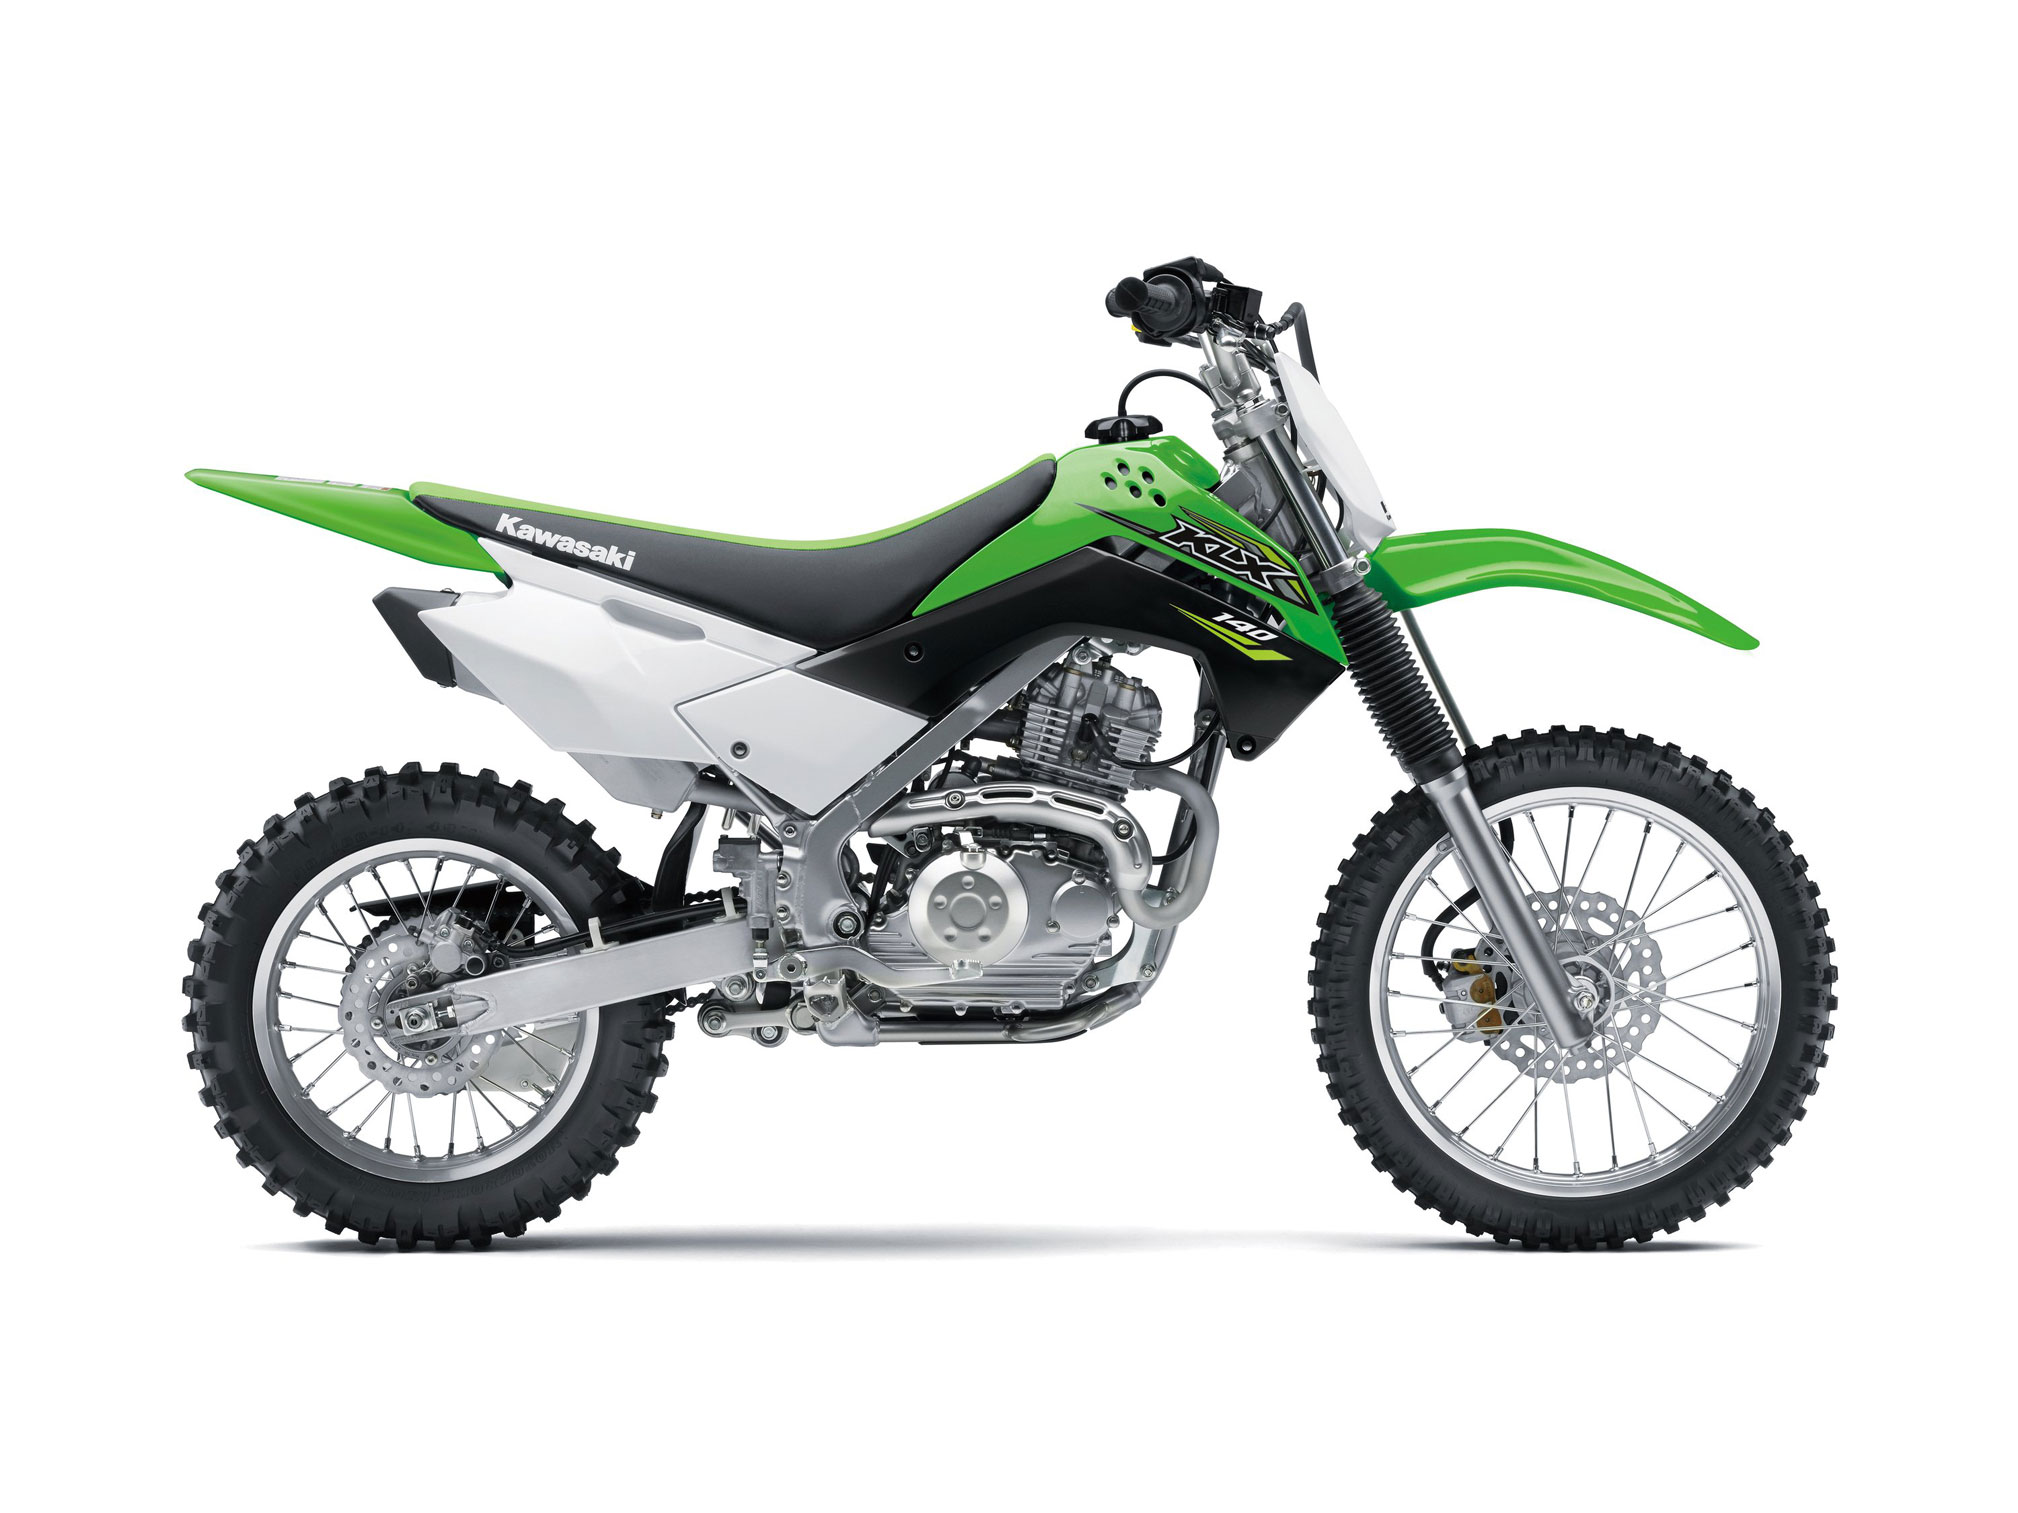 2018 Kawasaki Klx140 Review Totalmotorcycle